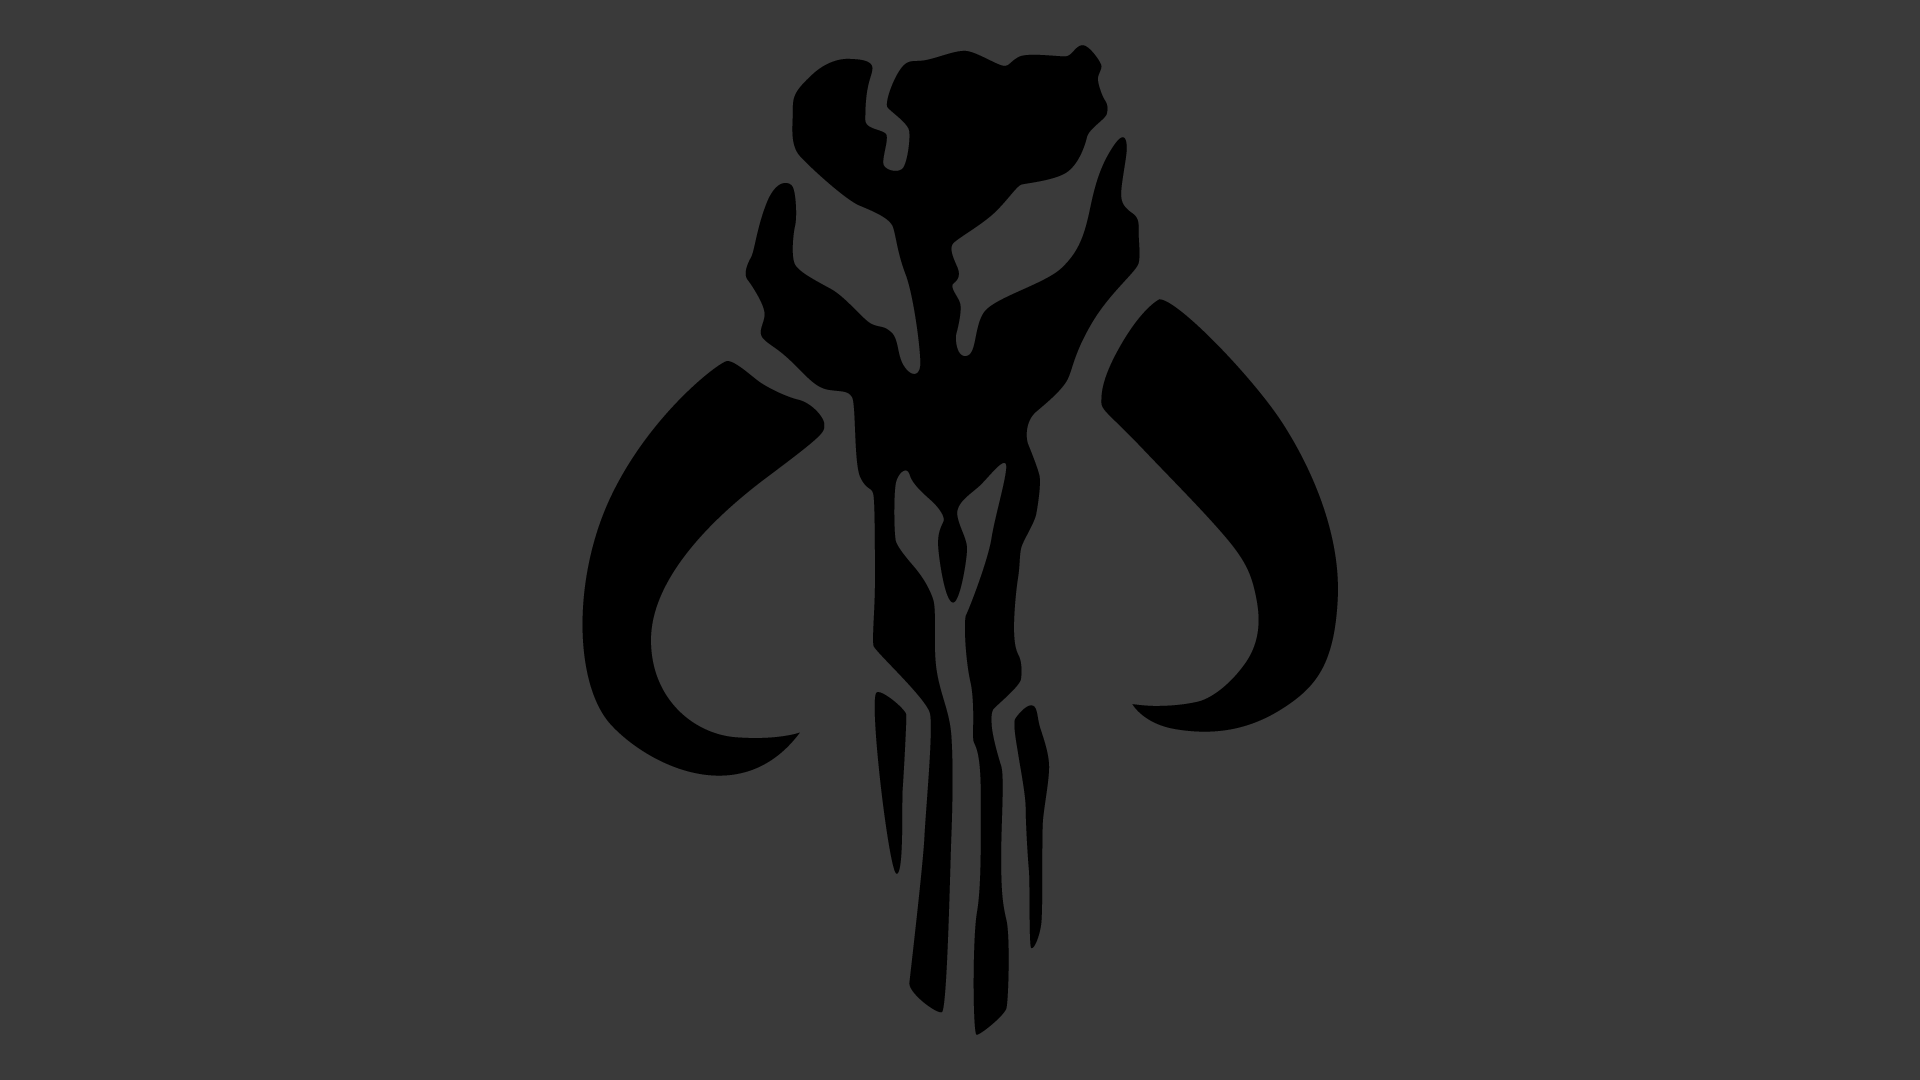 Mandalorian Logo By Inferna Assassin